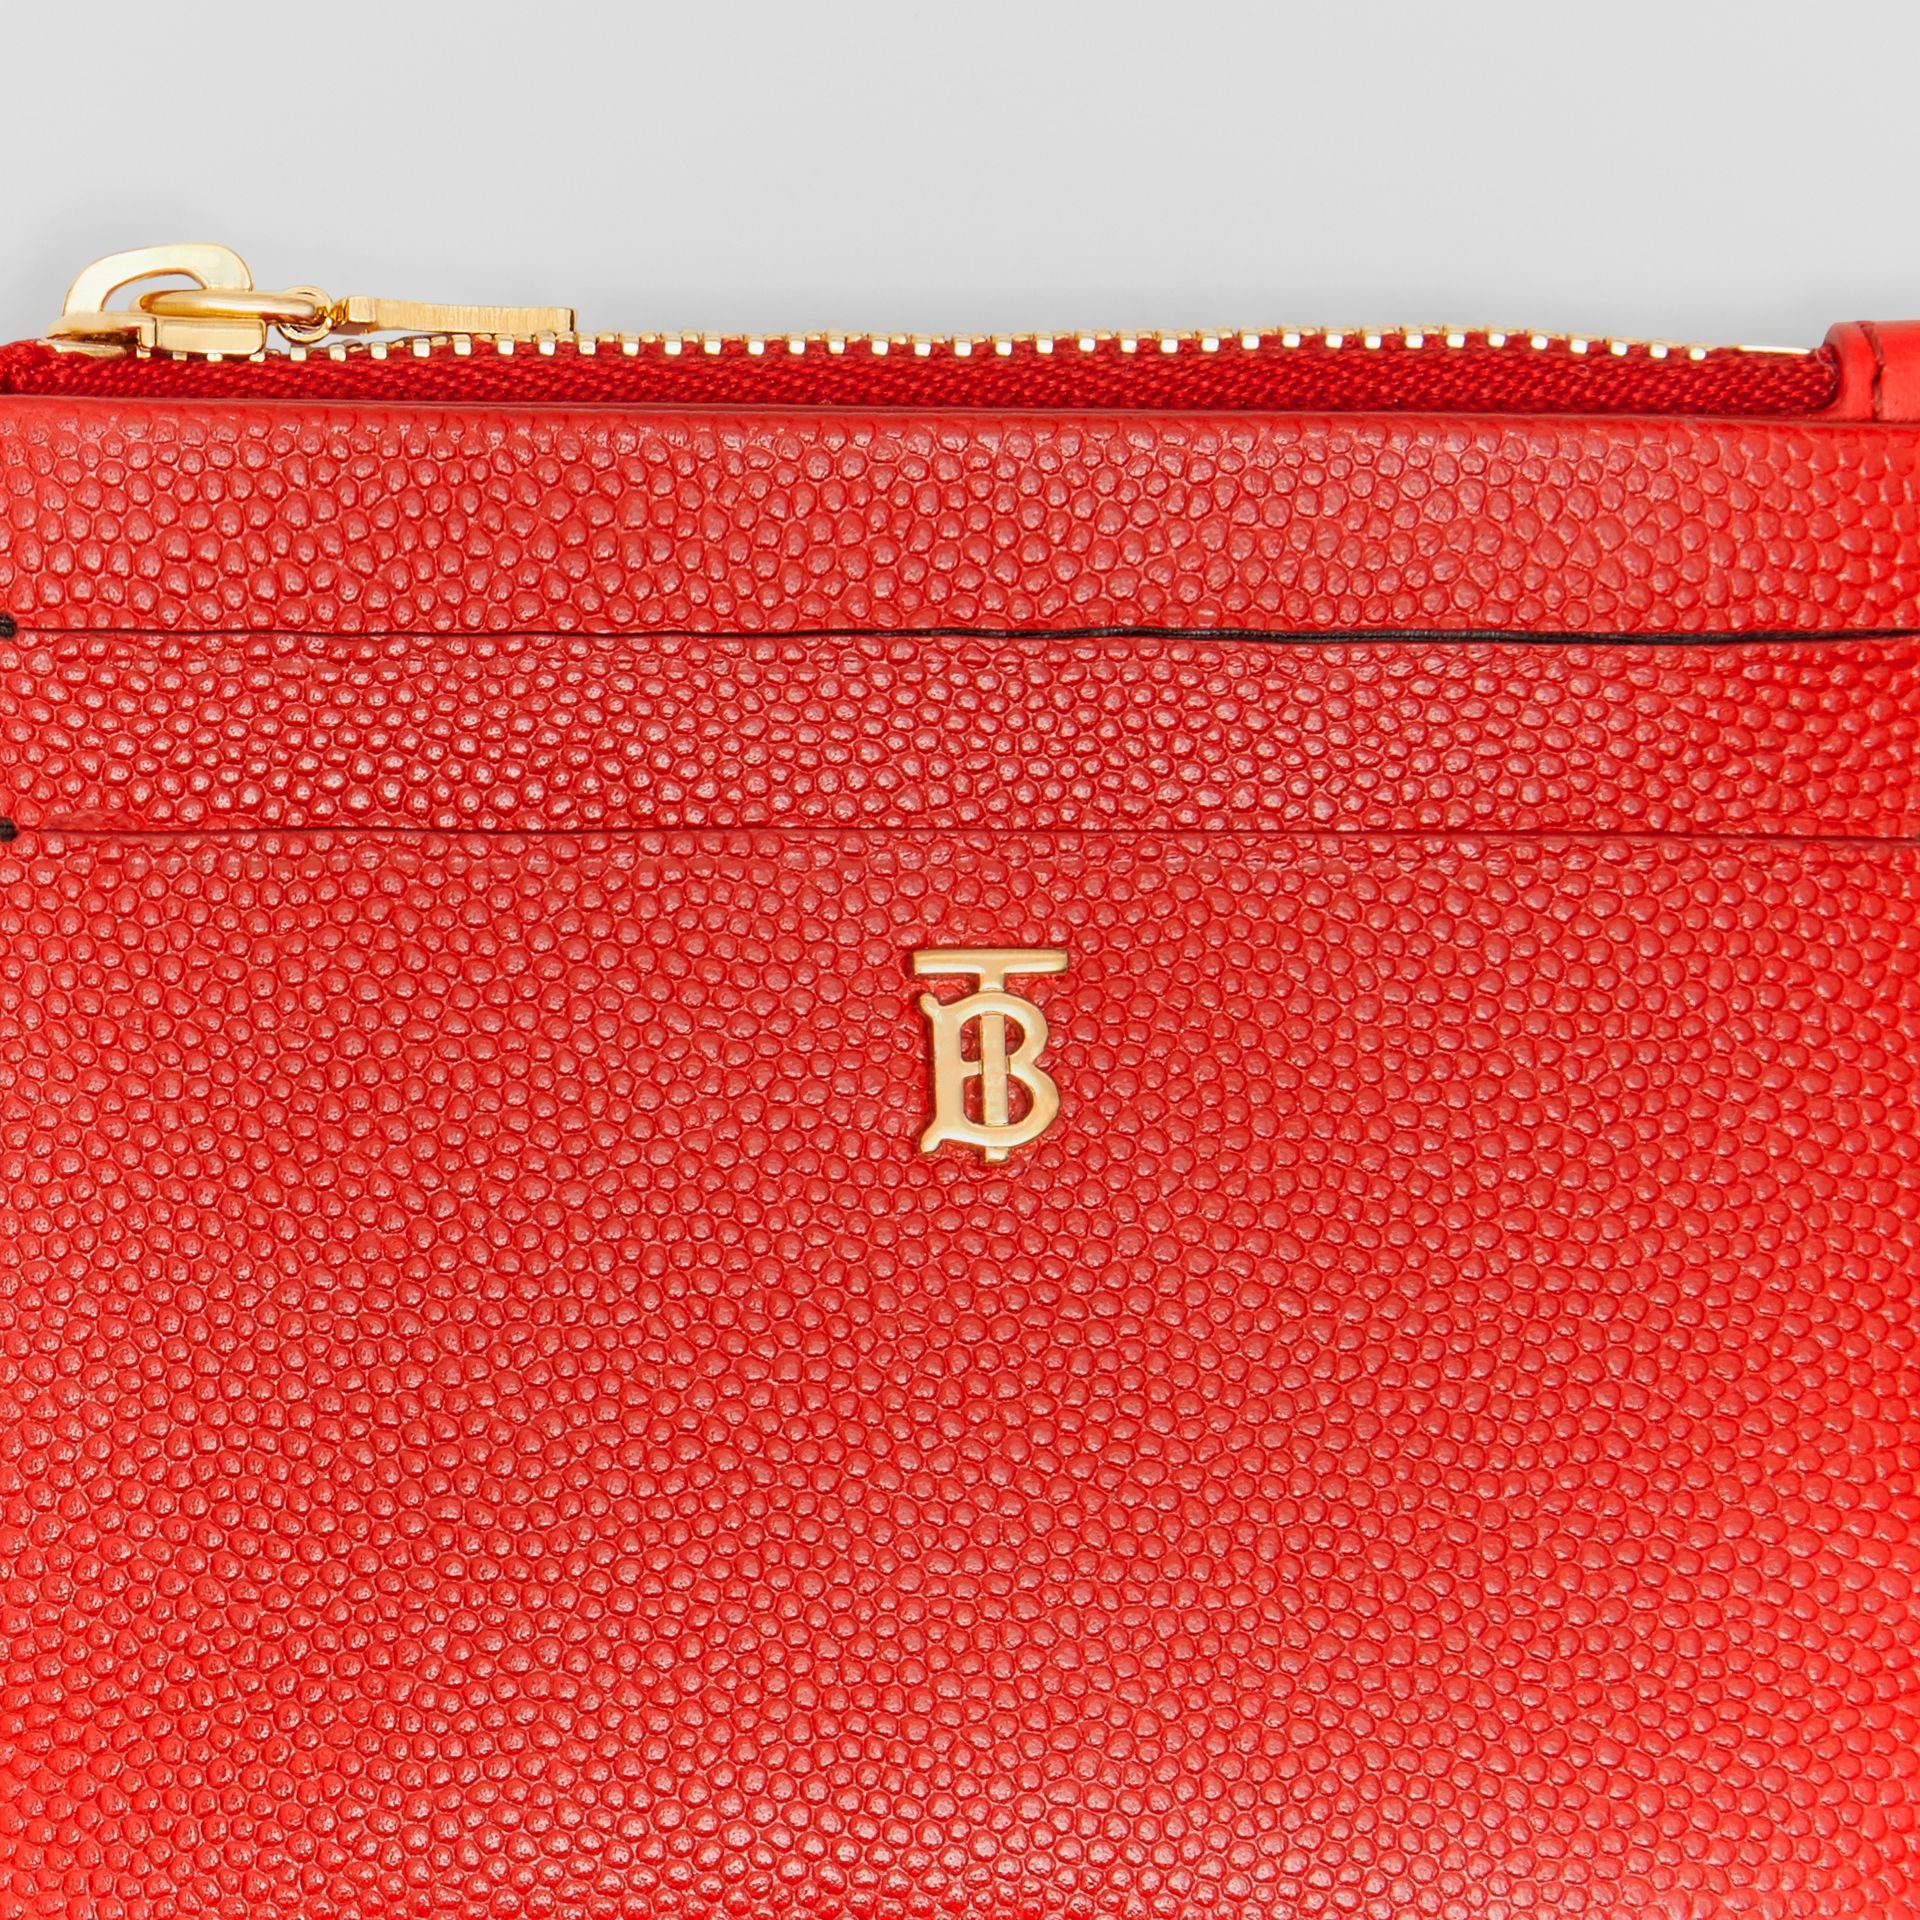 Monogram Motif Grainy Leather Zip Card Case in Bright Red - Women | Burberry Australia - gallery image 1